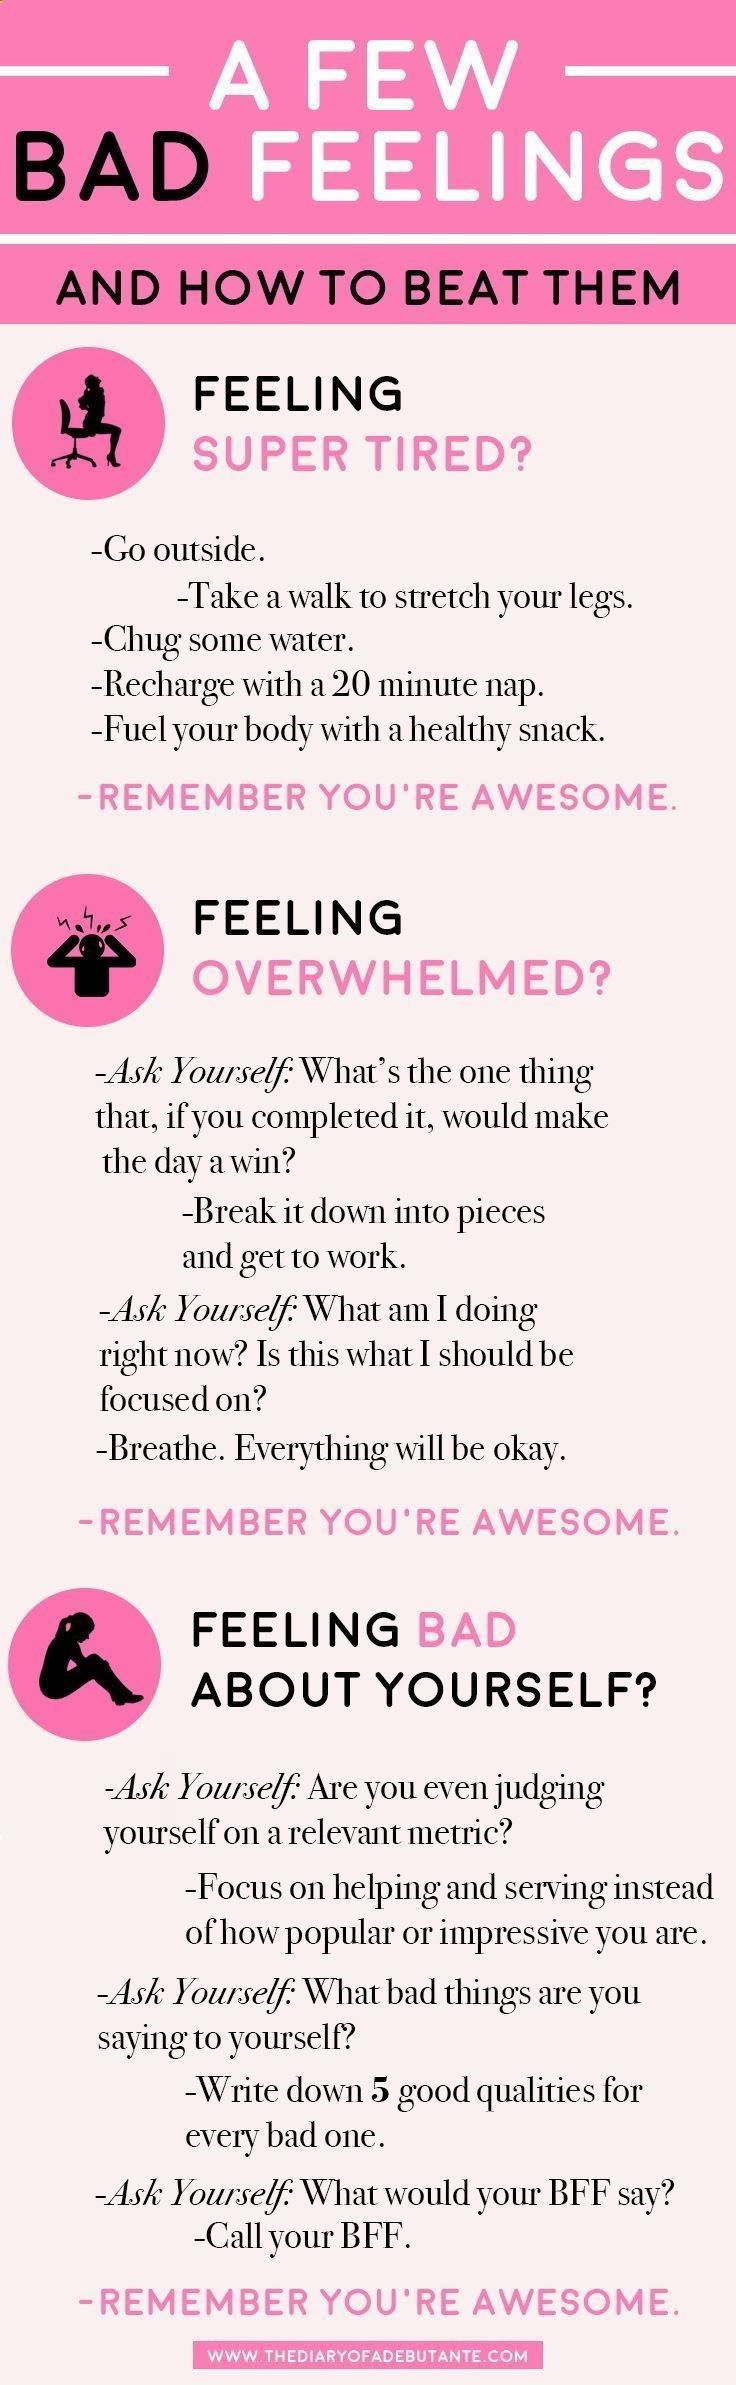 A few bad feelings-- and how to beat them. Use this positive thinking chart for a boost of positivity whenever youre having a bad day at work! | All About Perspective: A Cynics Guide to Thinking Positively by blogger Stephanie Ziajka from Diary of a Debutante